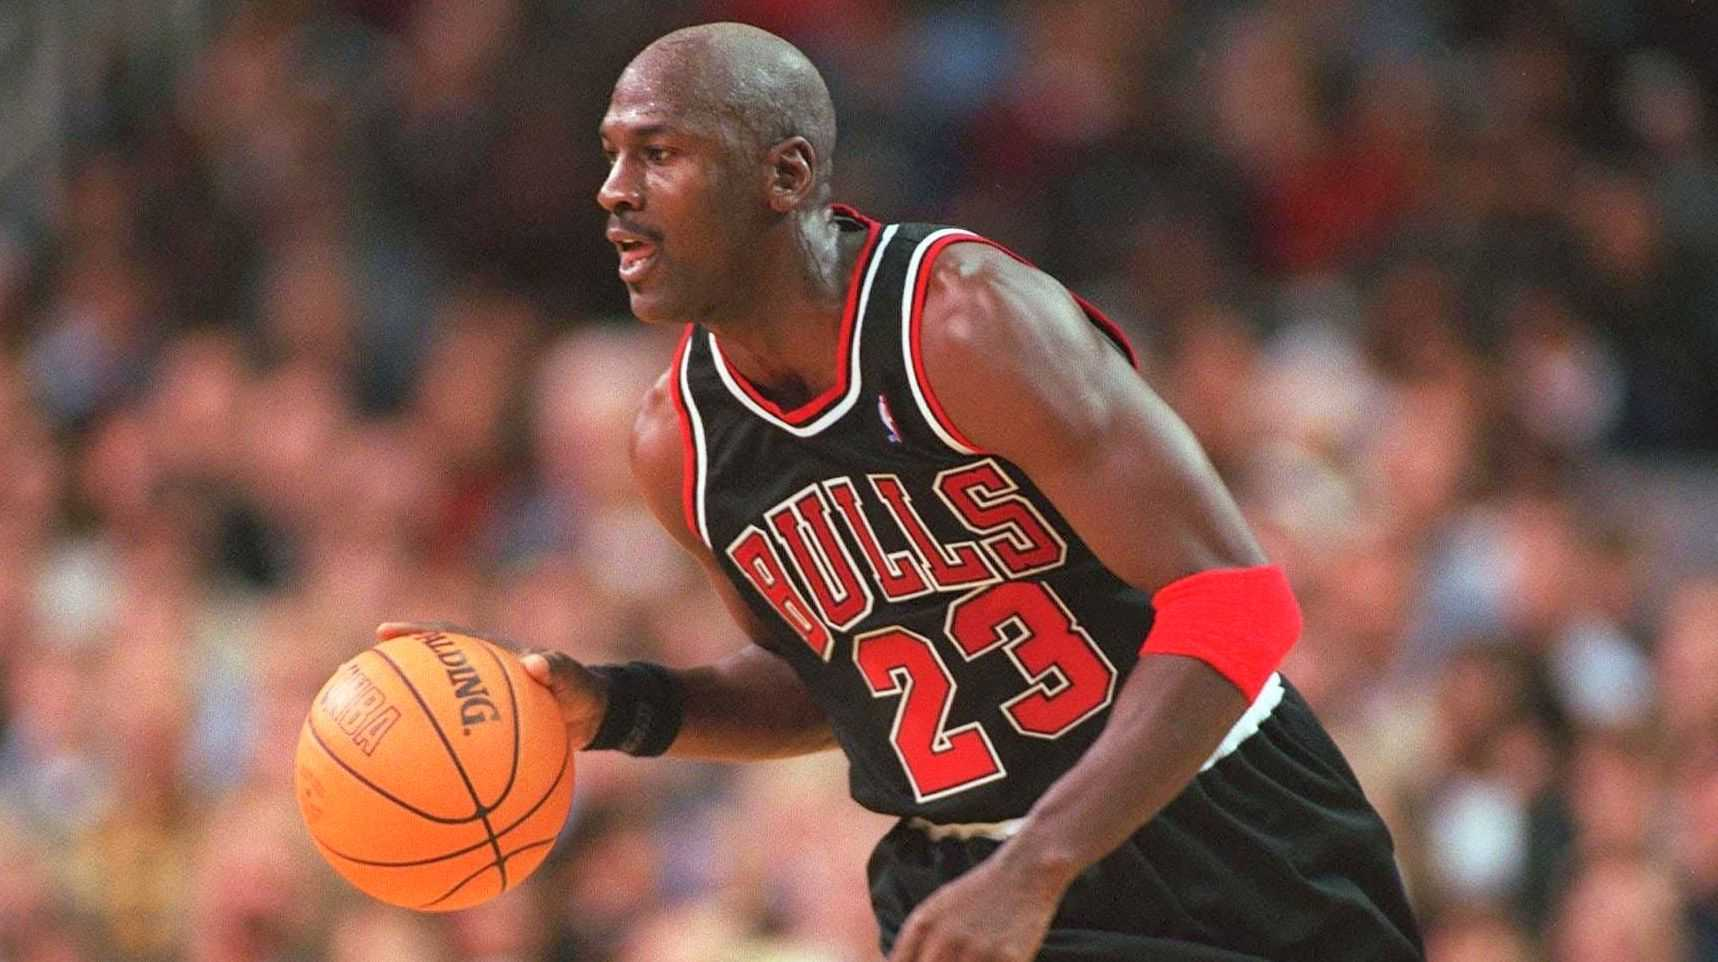 Michael Jordan Basketball